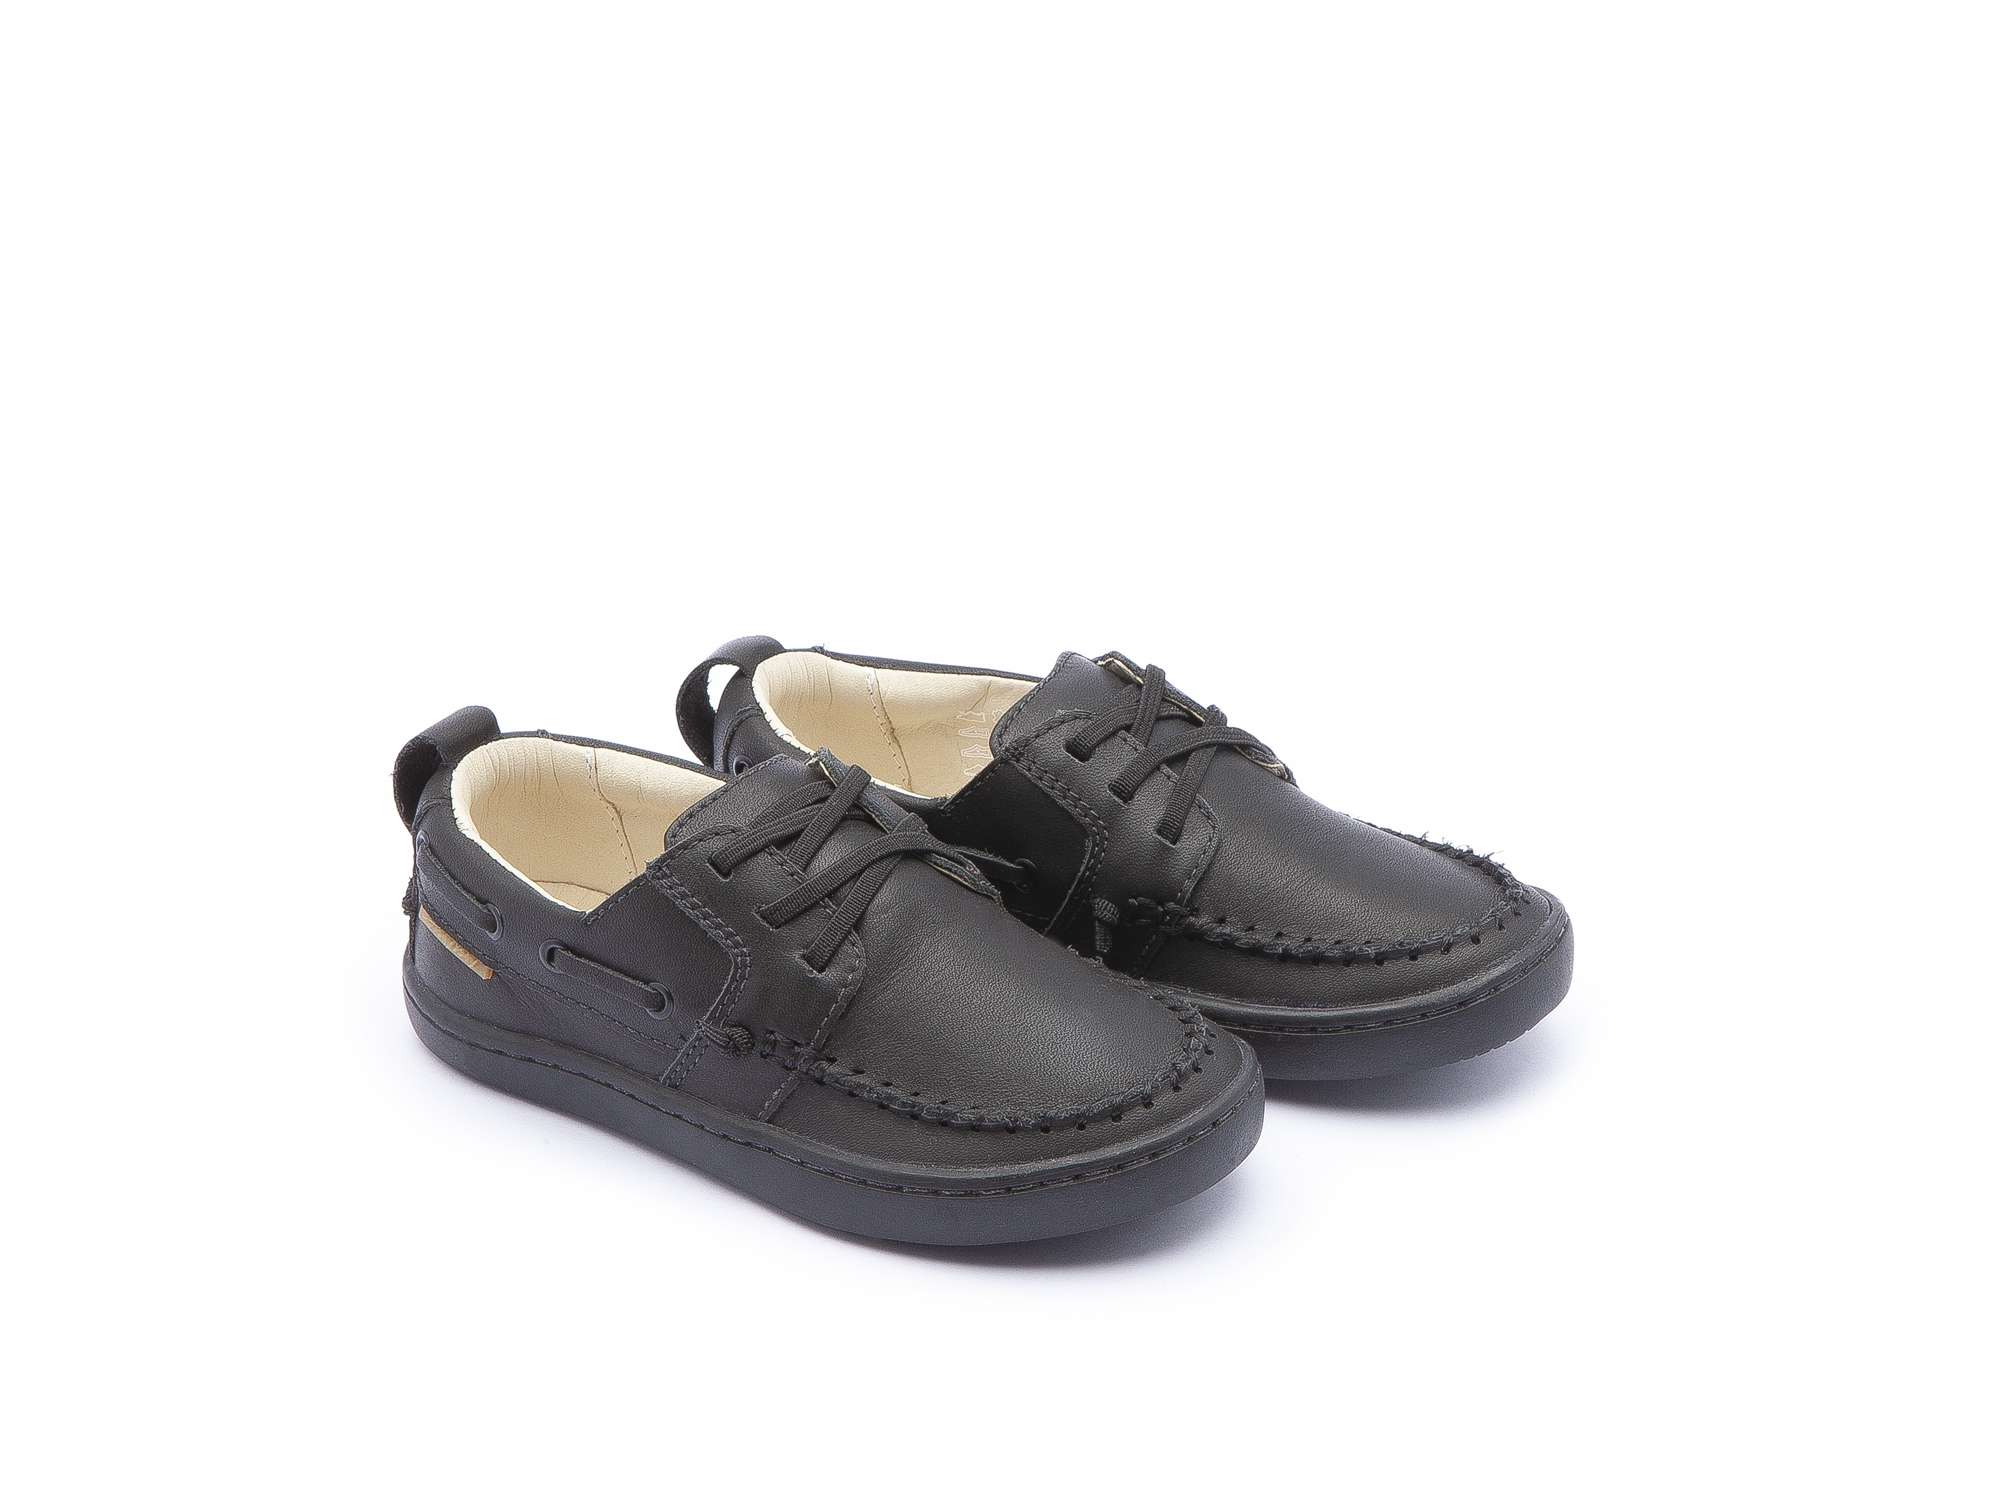 Sneaker Casual Little Snap Black Toddler 2 à 4 anos - 0